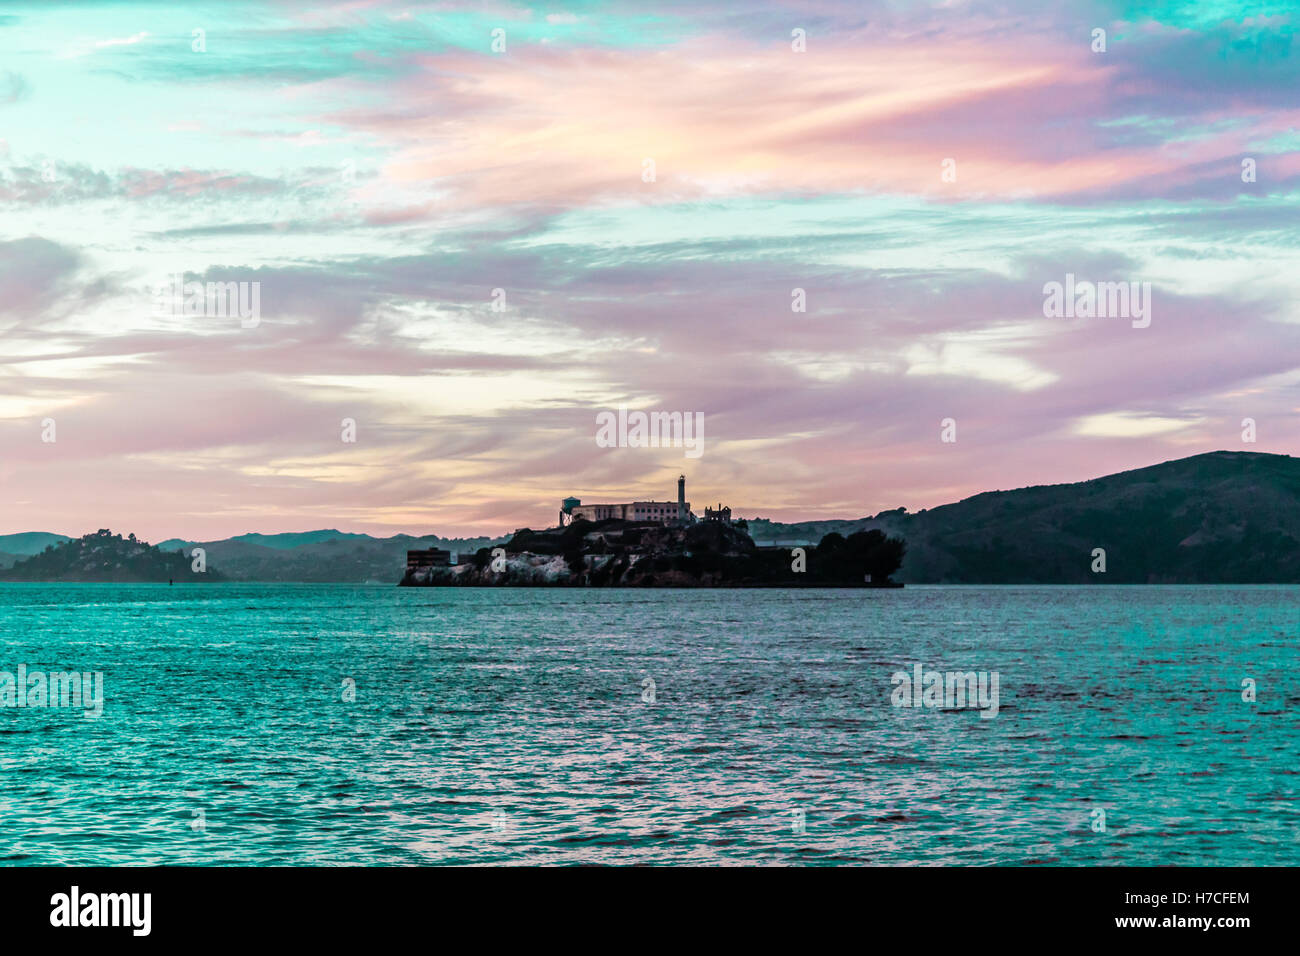 Photo of Colorful Sunset at Alcatraz Prison in San Francisco, California - Stock Image